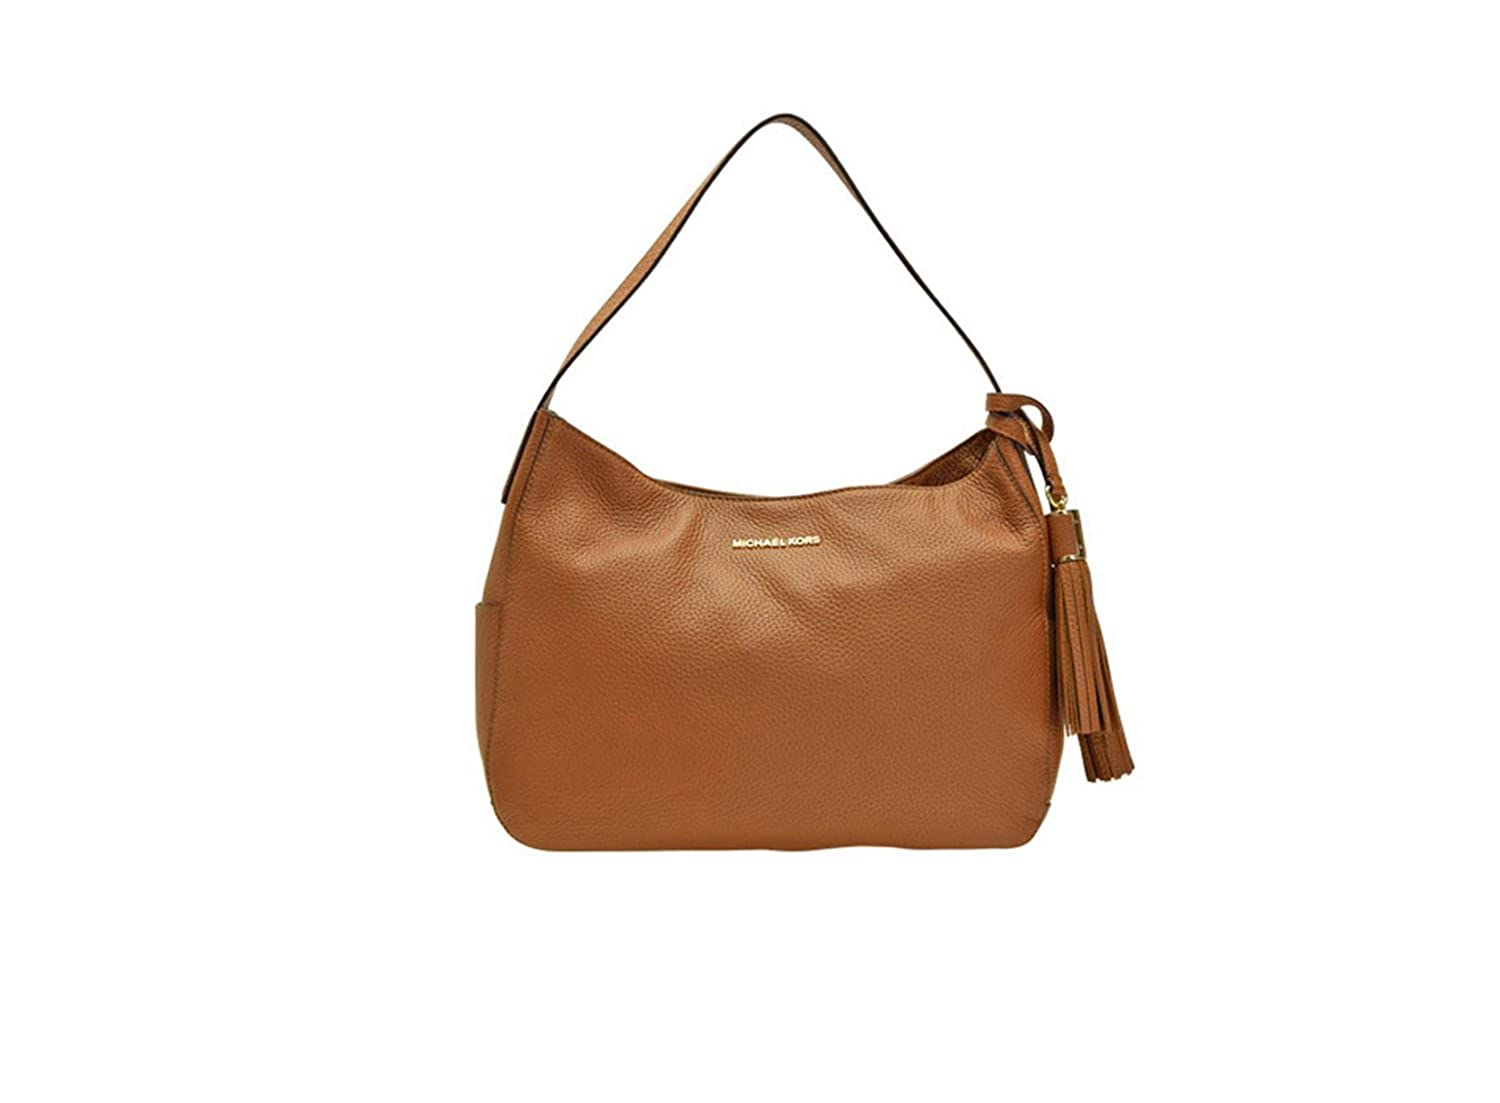 cbaab802a0ea Michael Kors Ashbury Large Slouchy Shoulder Leather Luggage  Handbags   Amazon.com